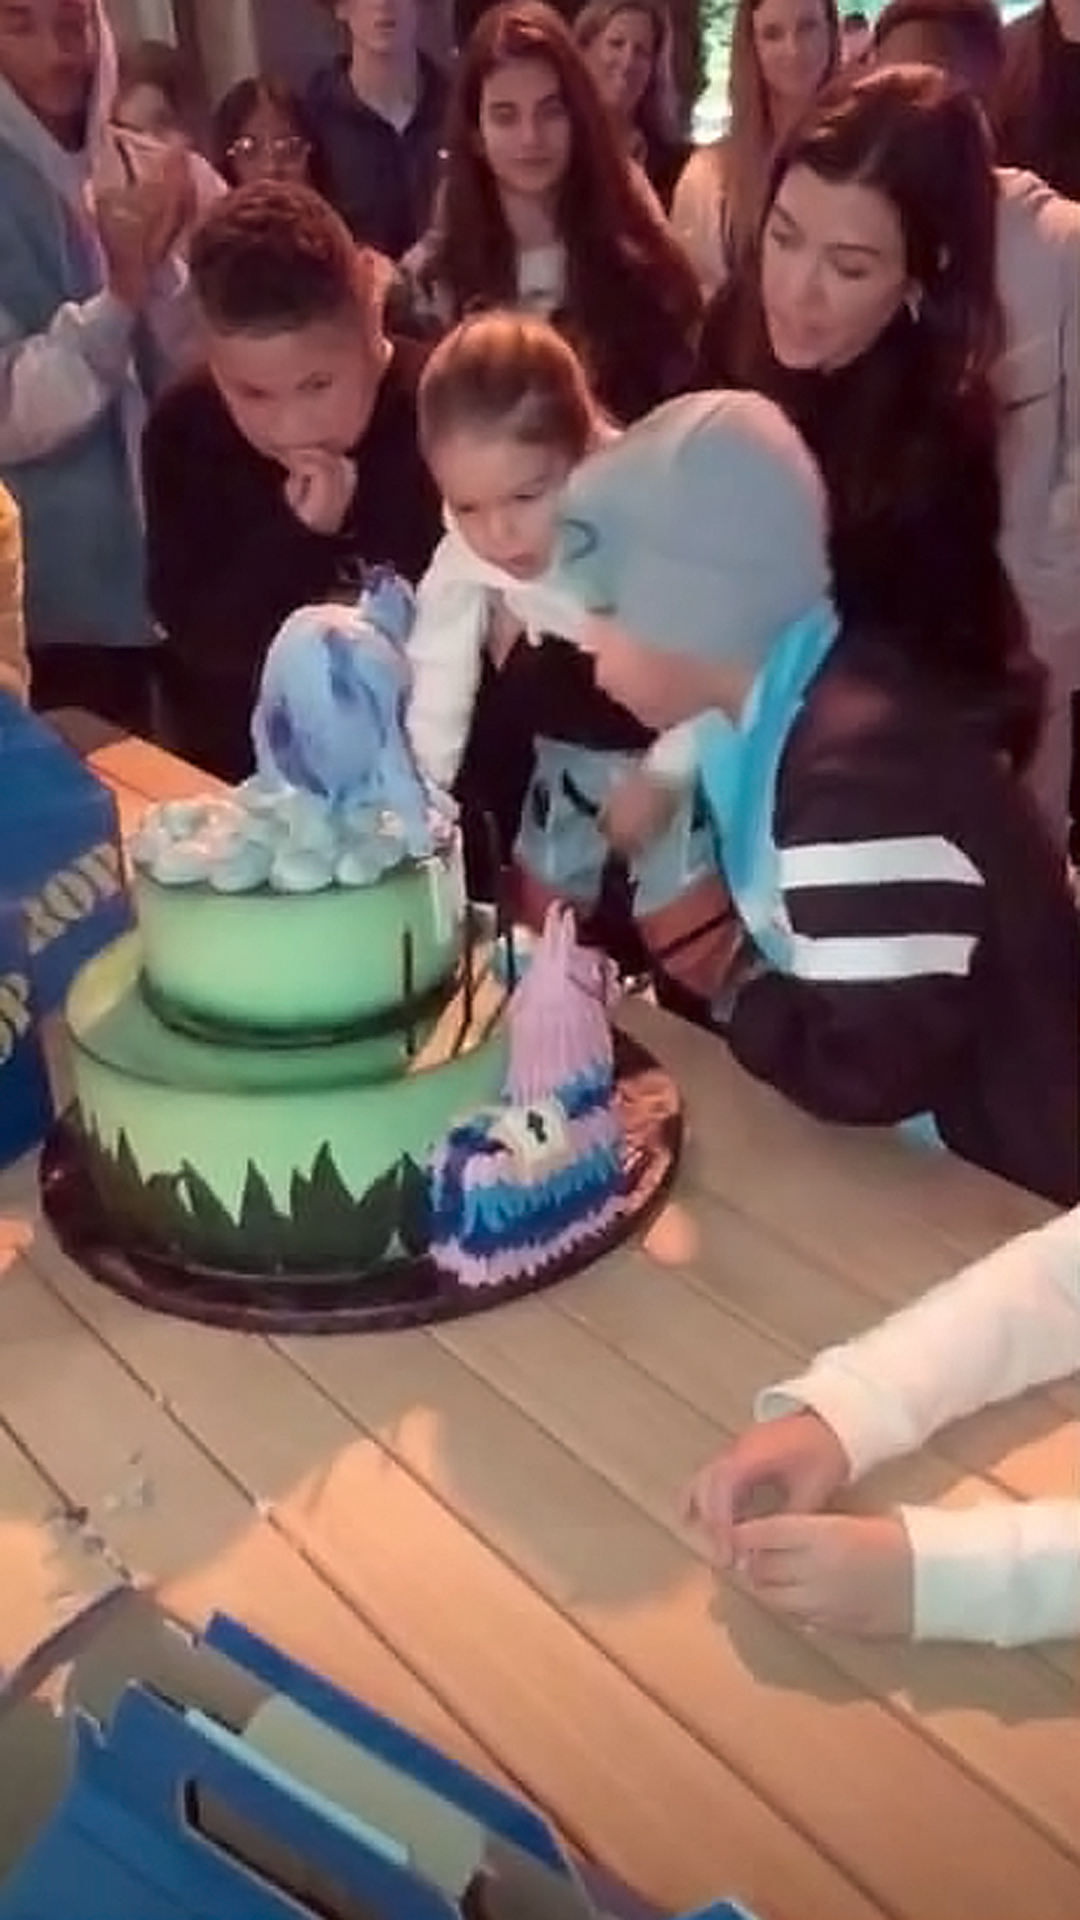 Kourtney Throws Sons a Fortnite-Themed Birthday Party - Kourtney held Reign as he helped Mason make a wish.